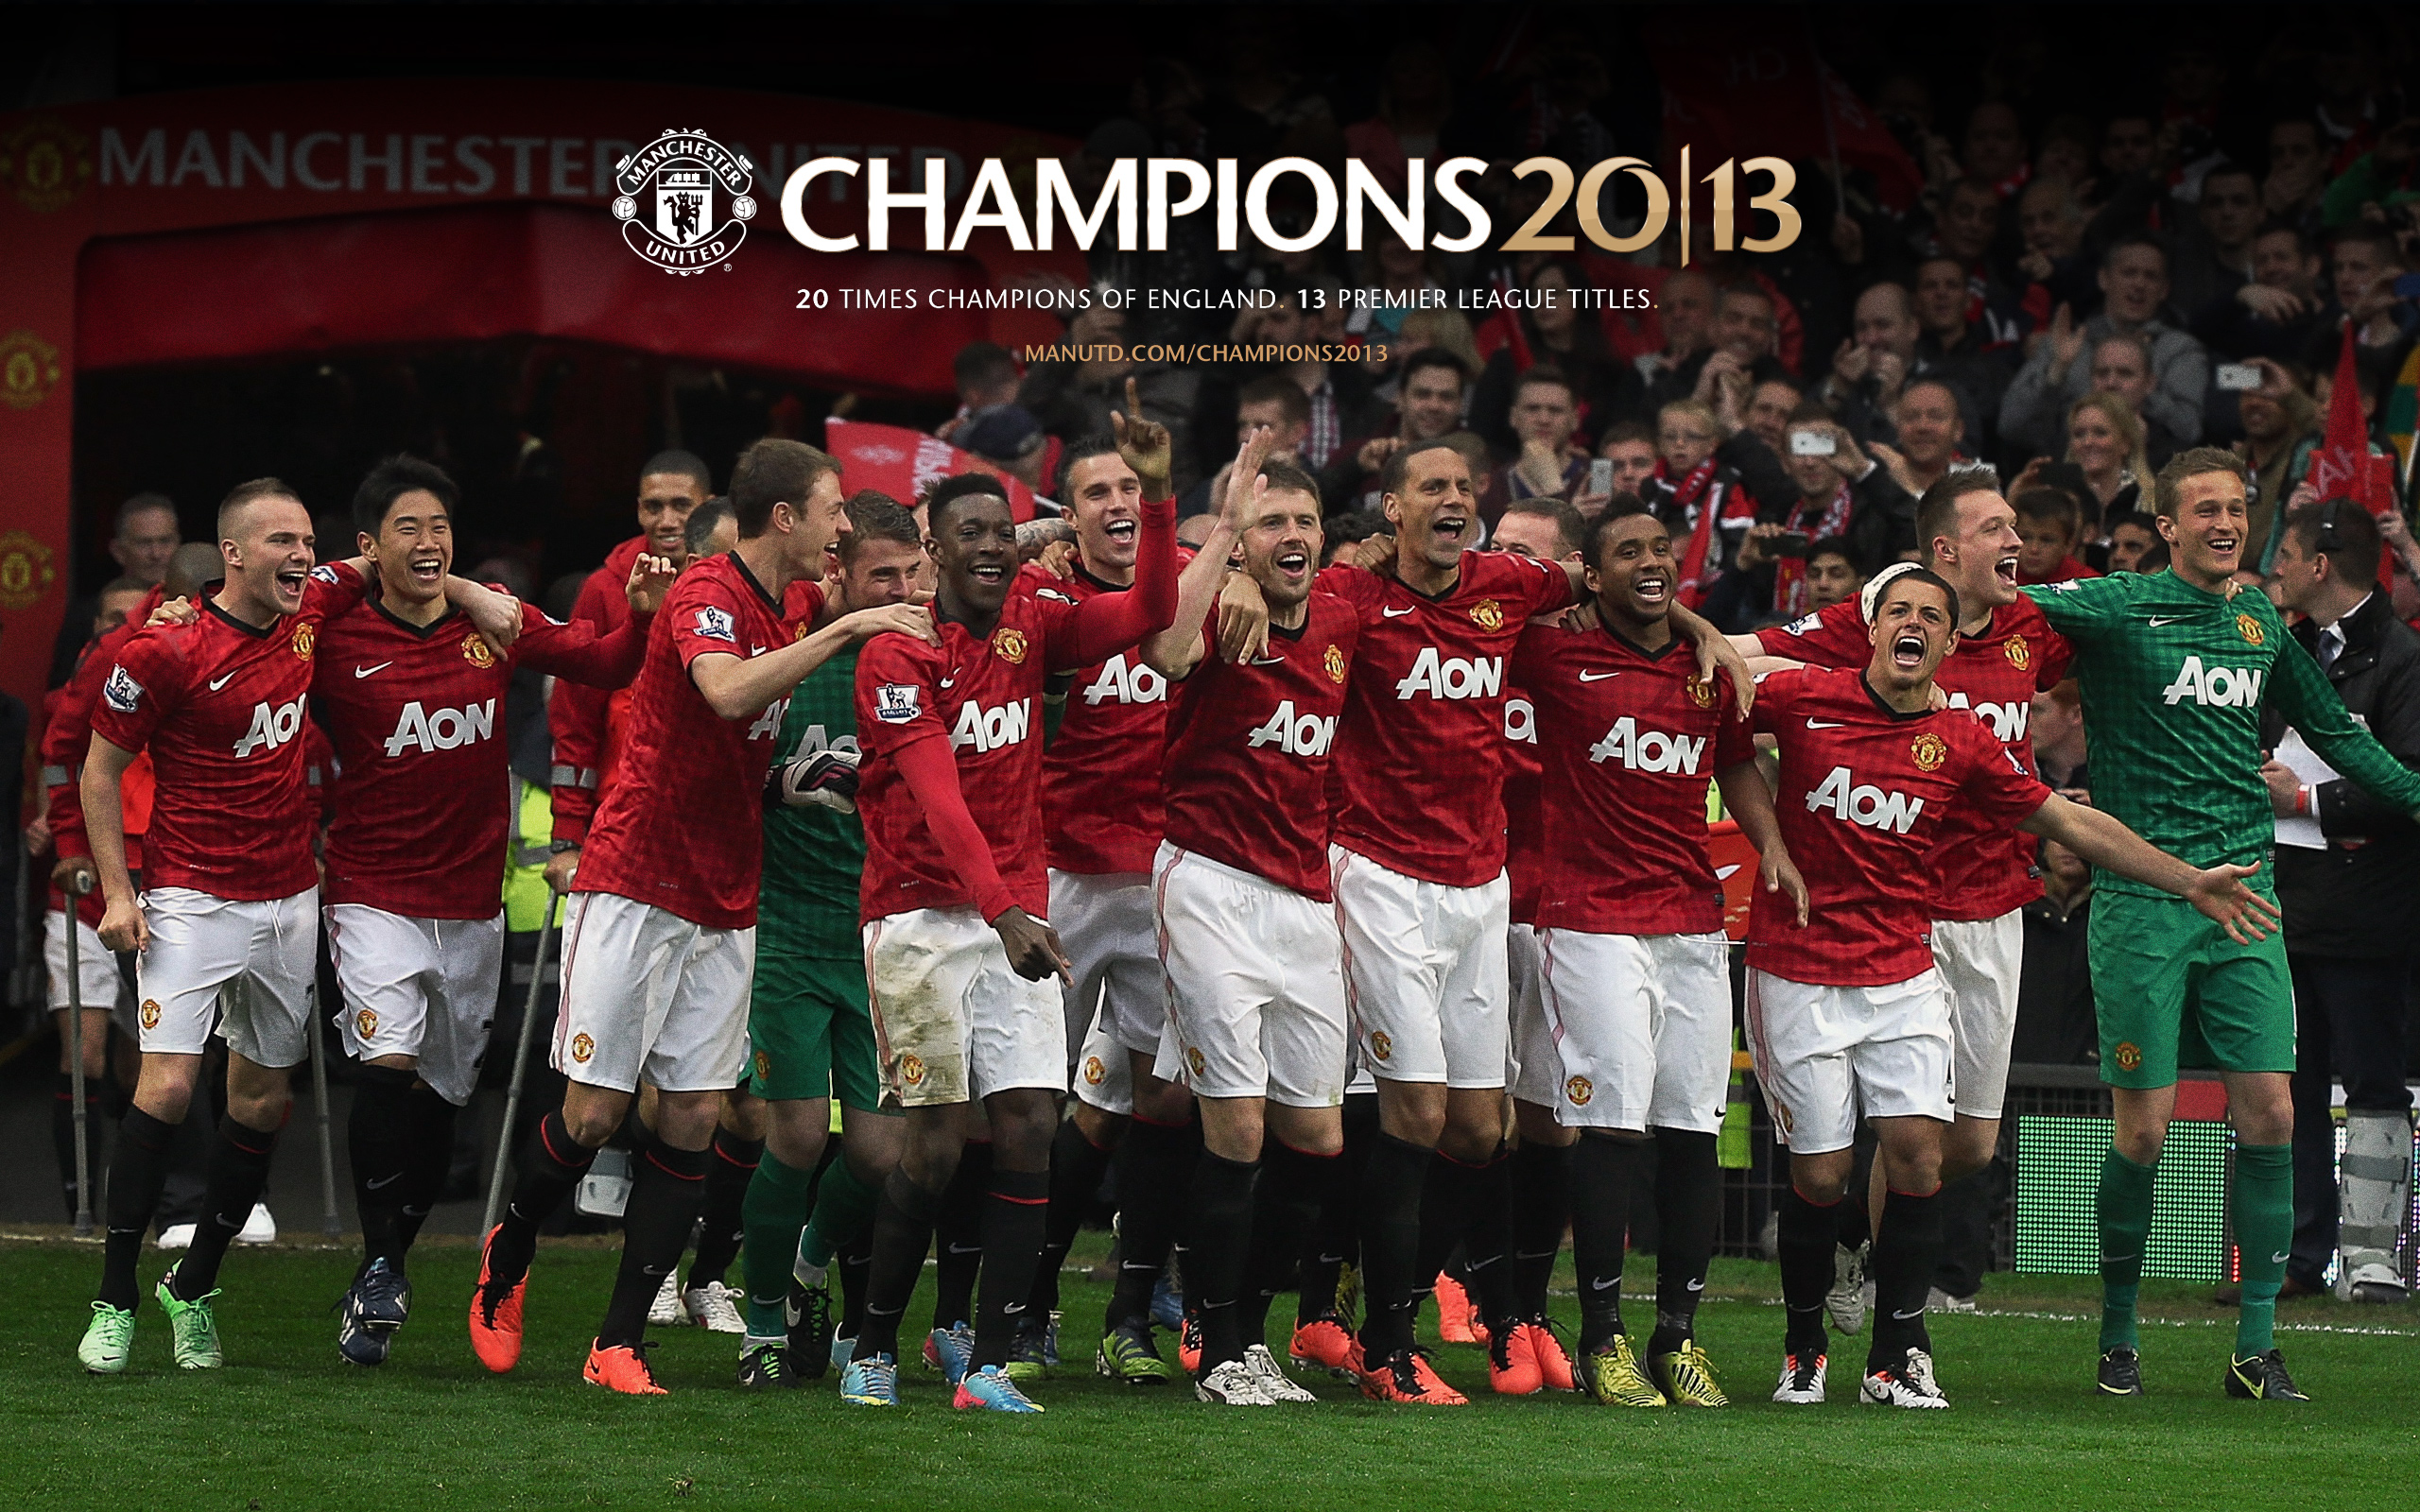 champions 2013 manchester united wallpaper